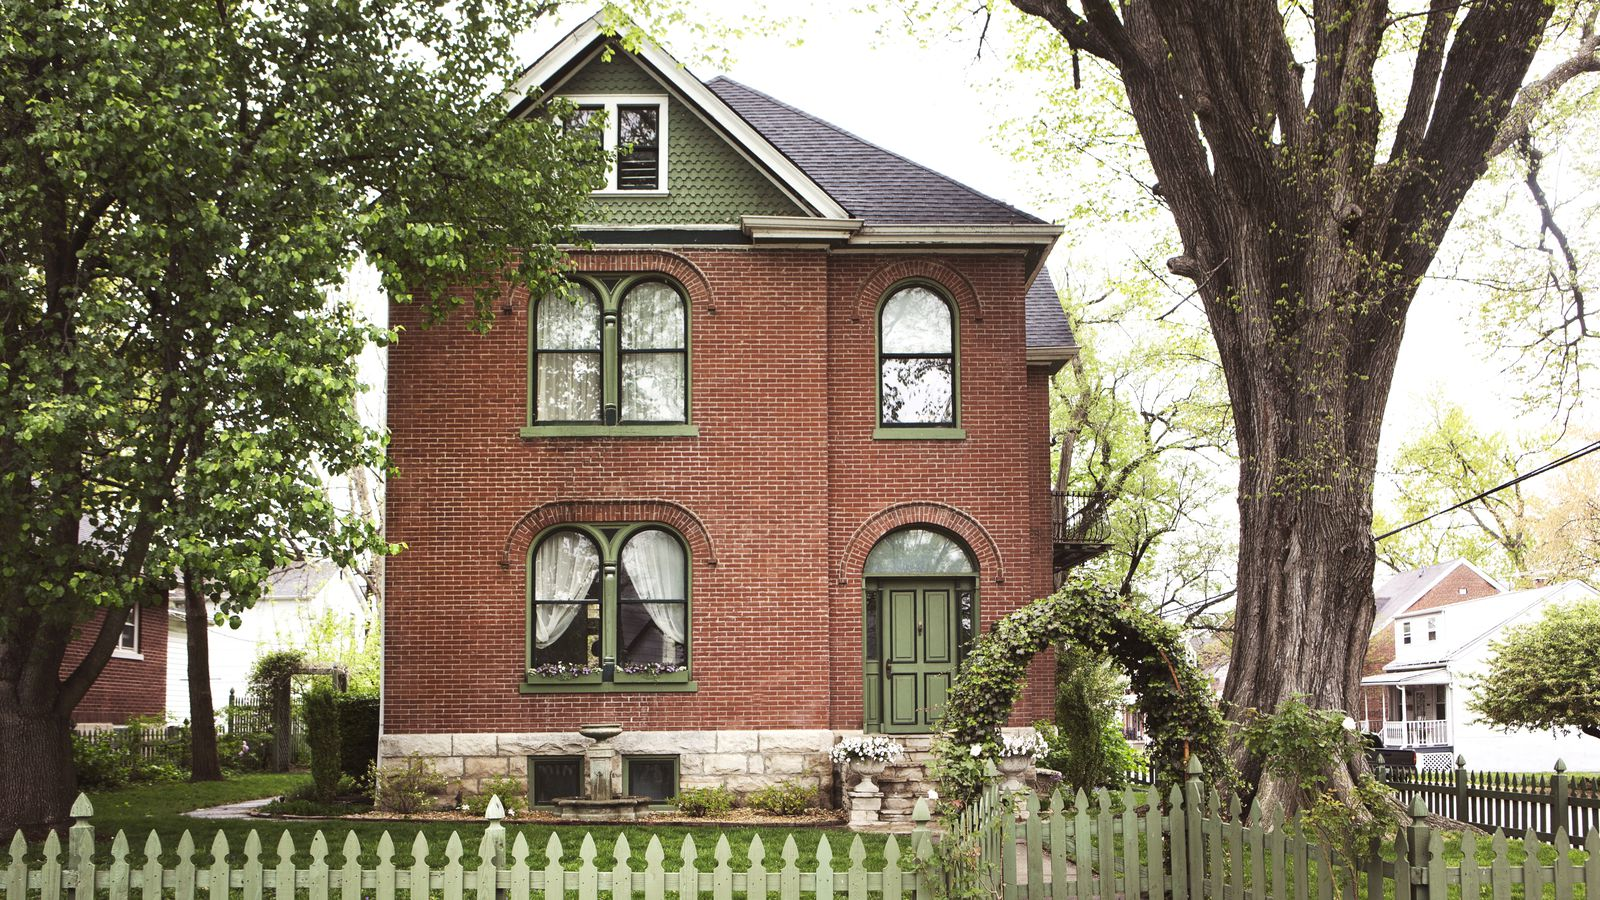 House calls inside a romantic brick victorian in missouri for Brick victorian house